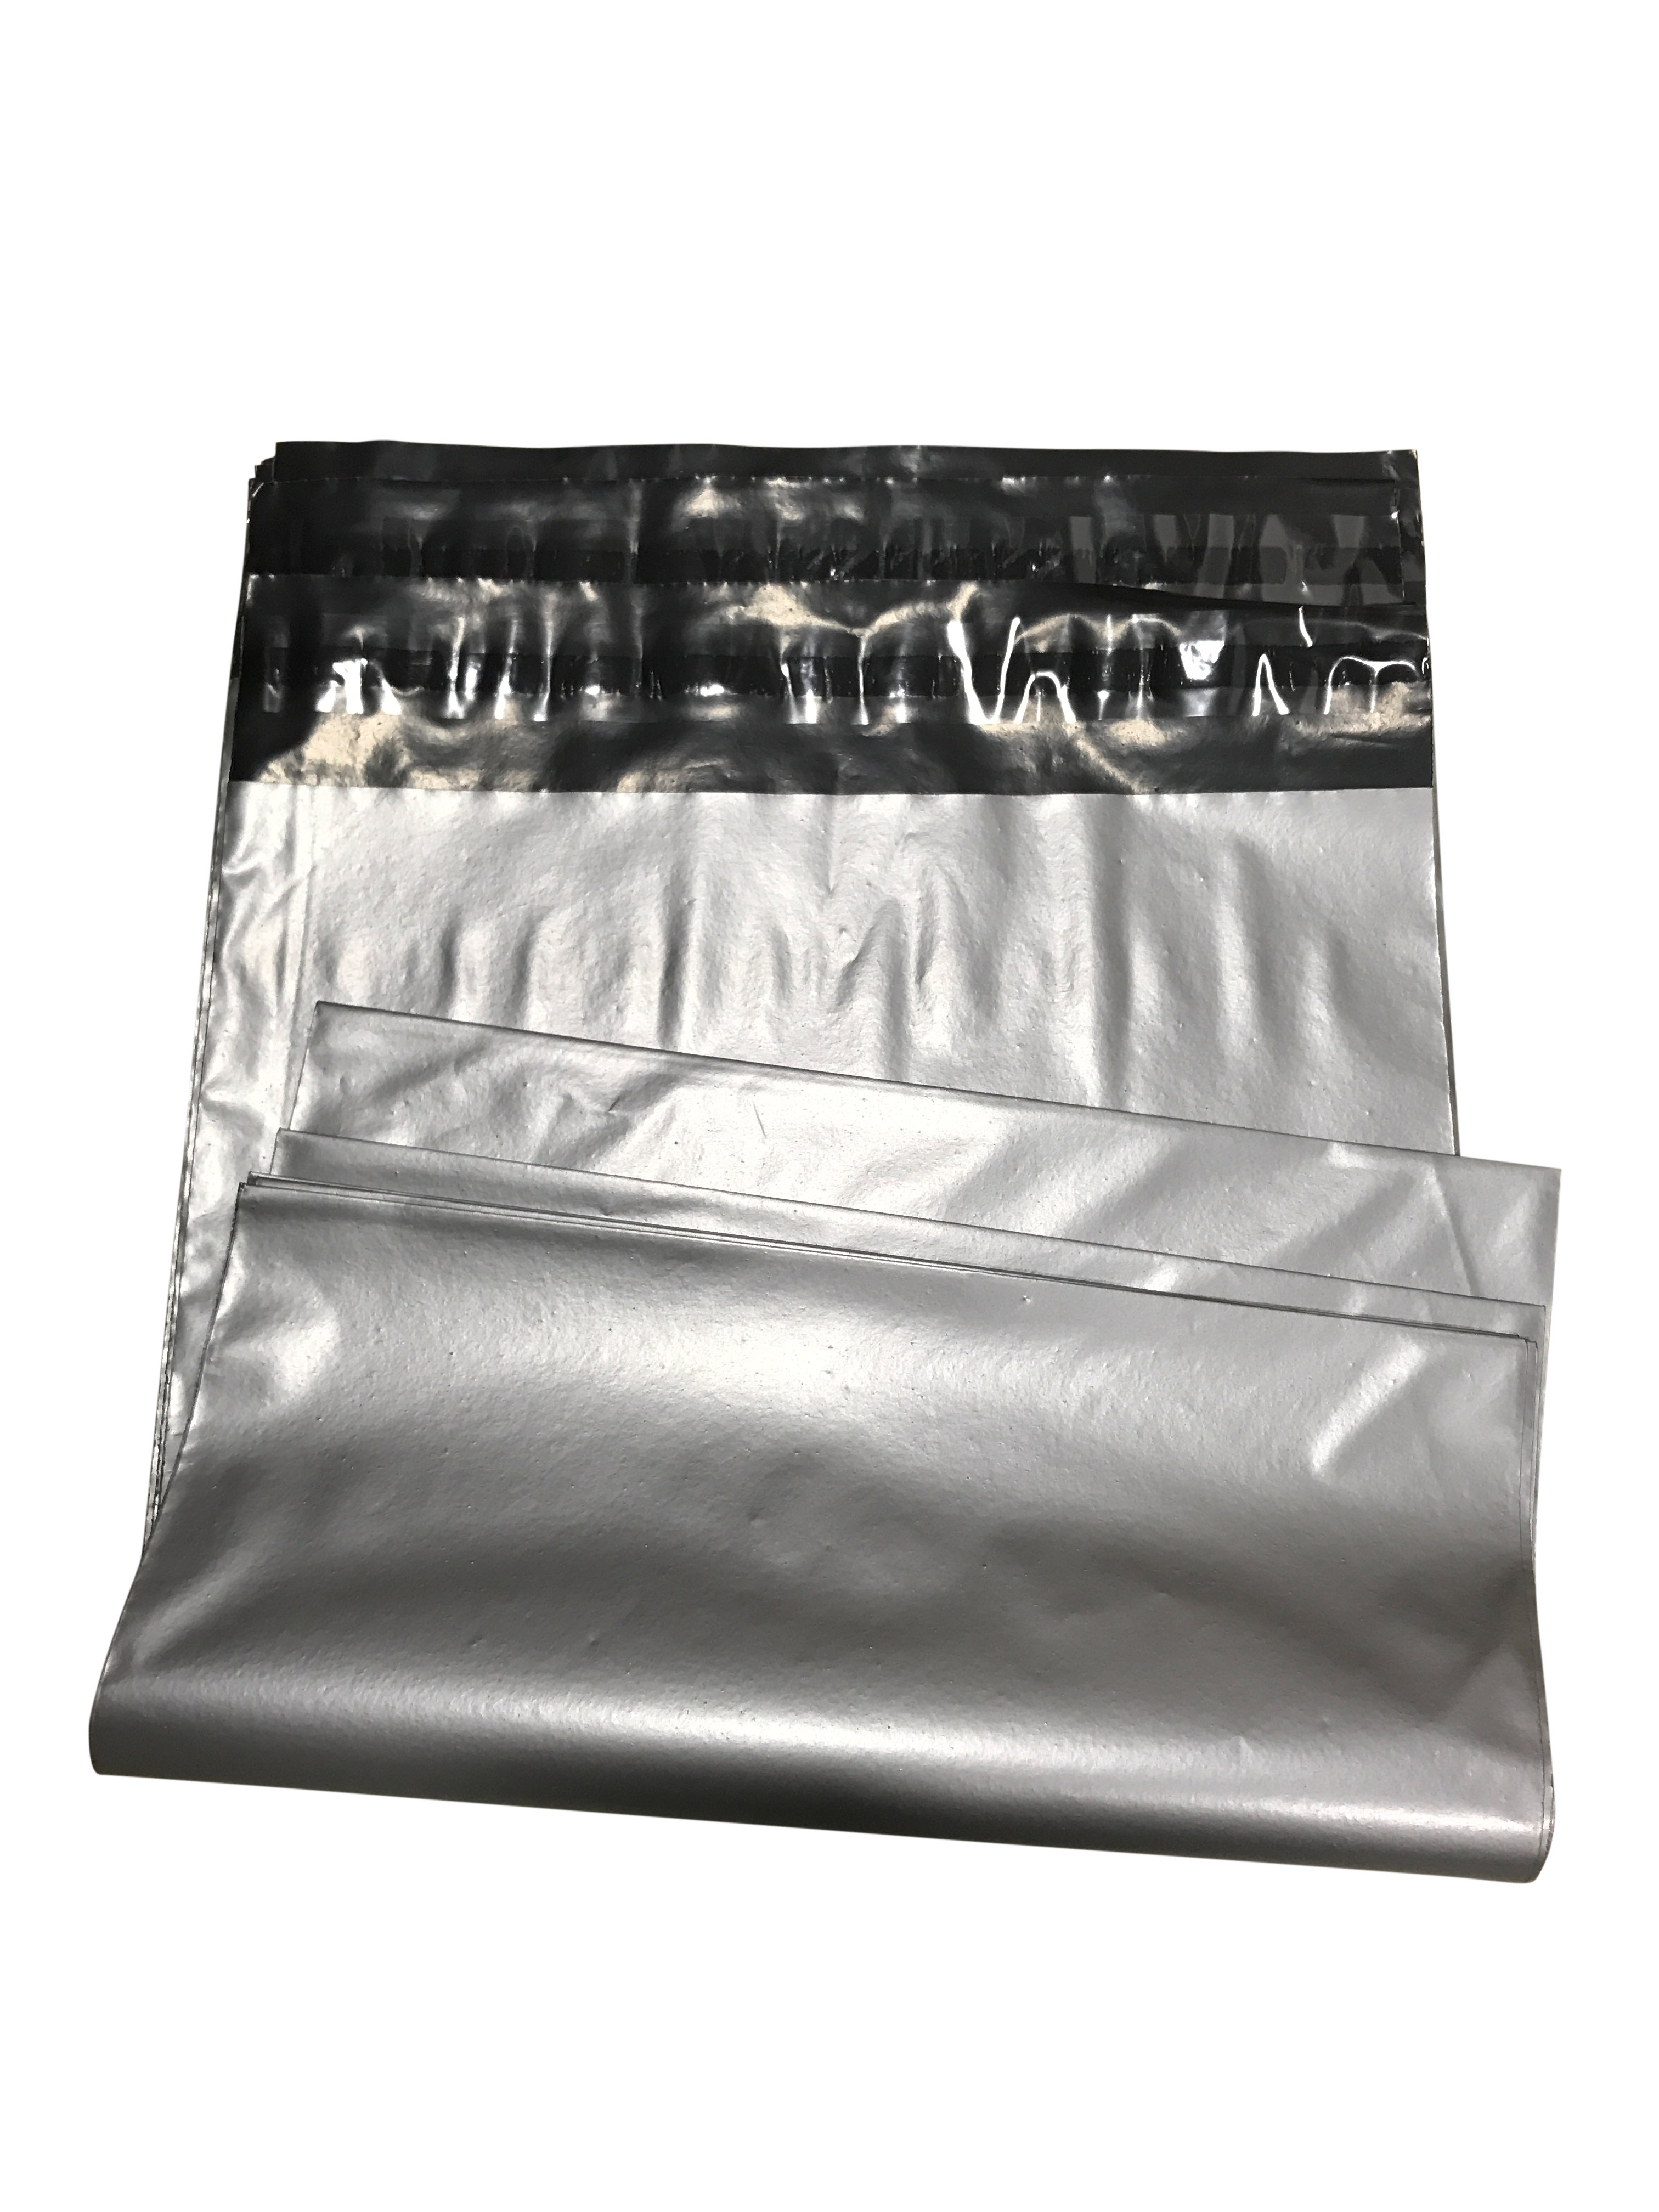 "100 14.5x19 Poly Bags Plastic Envelopes Mailers Shipping Self Seal 14.5""x19"" by"